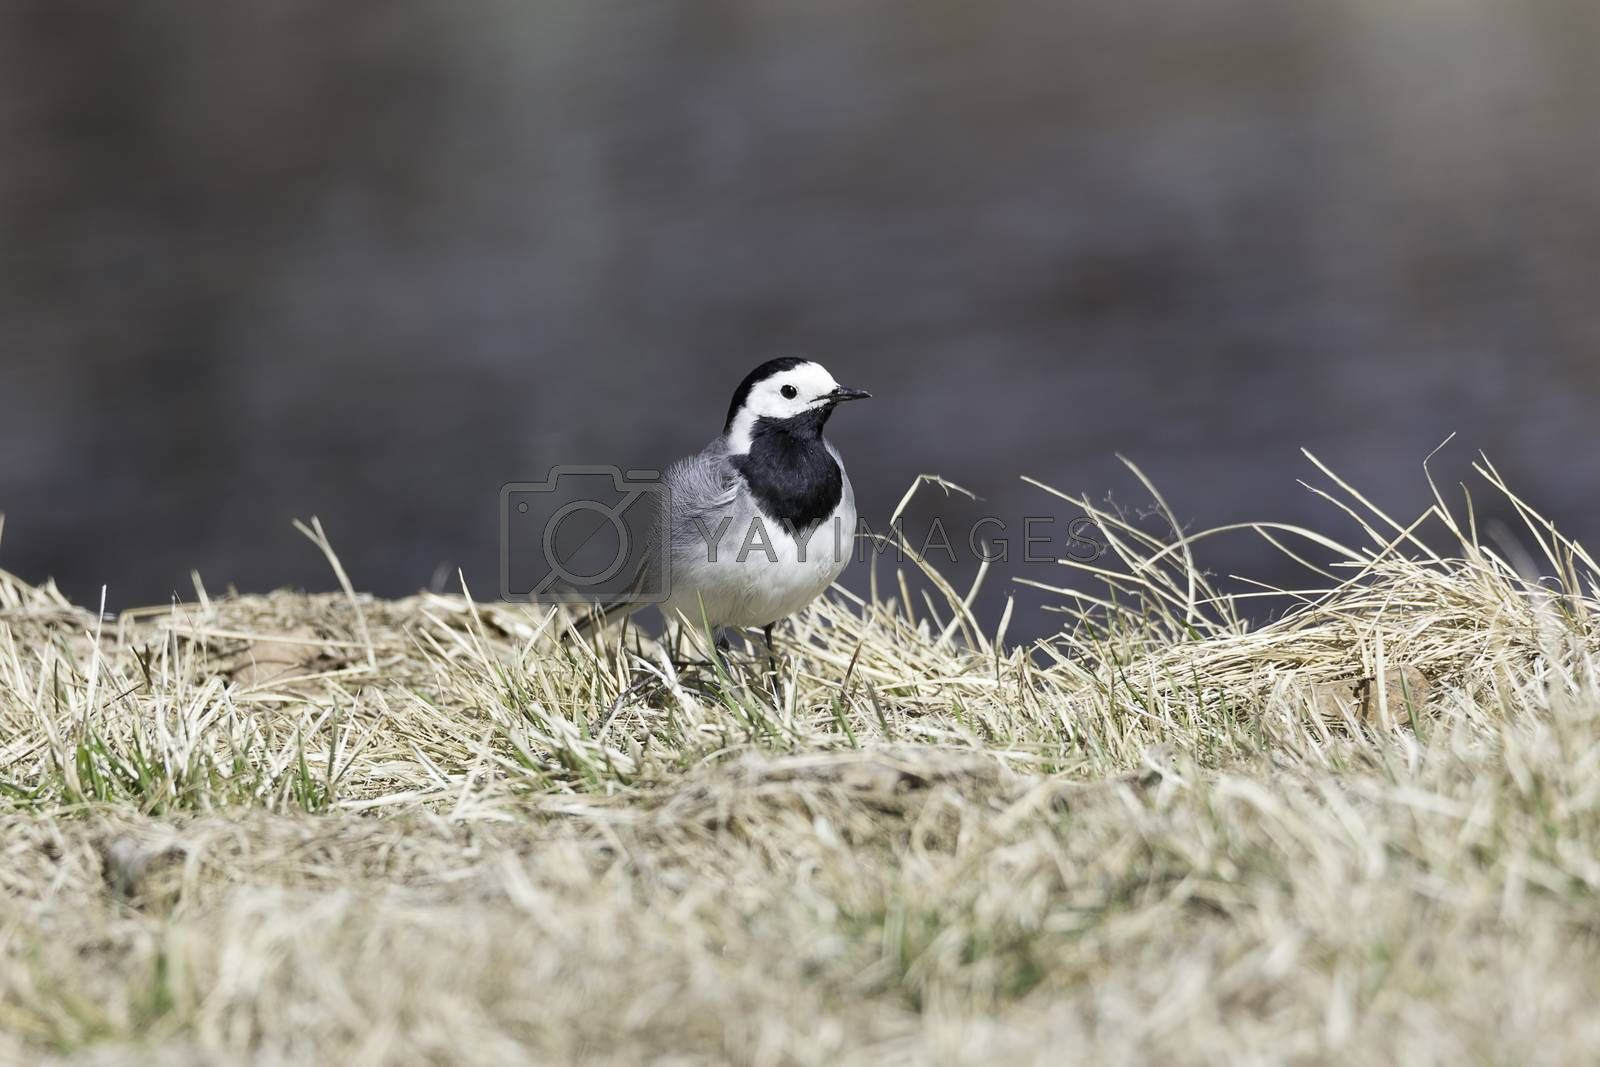 White Wagtail in Grass close up.